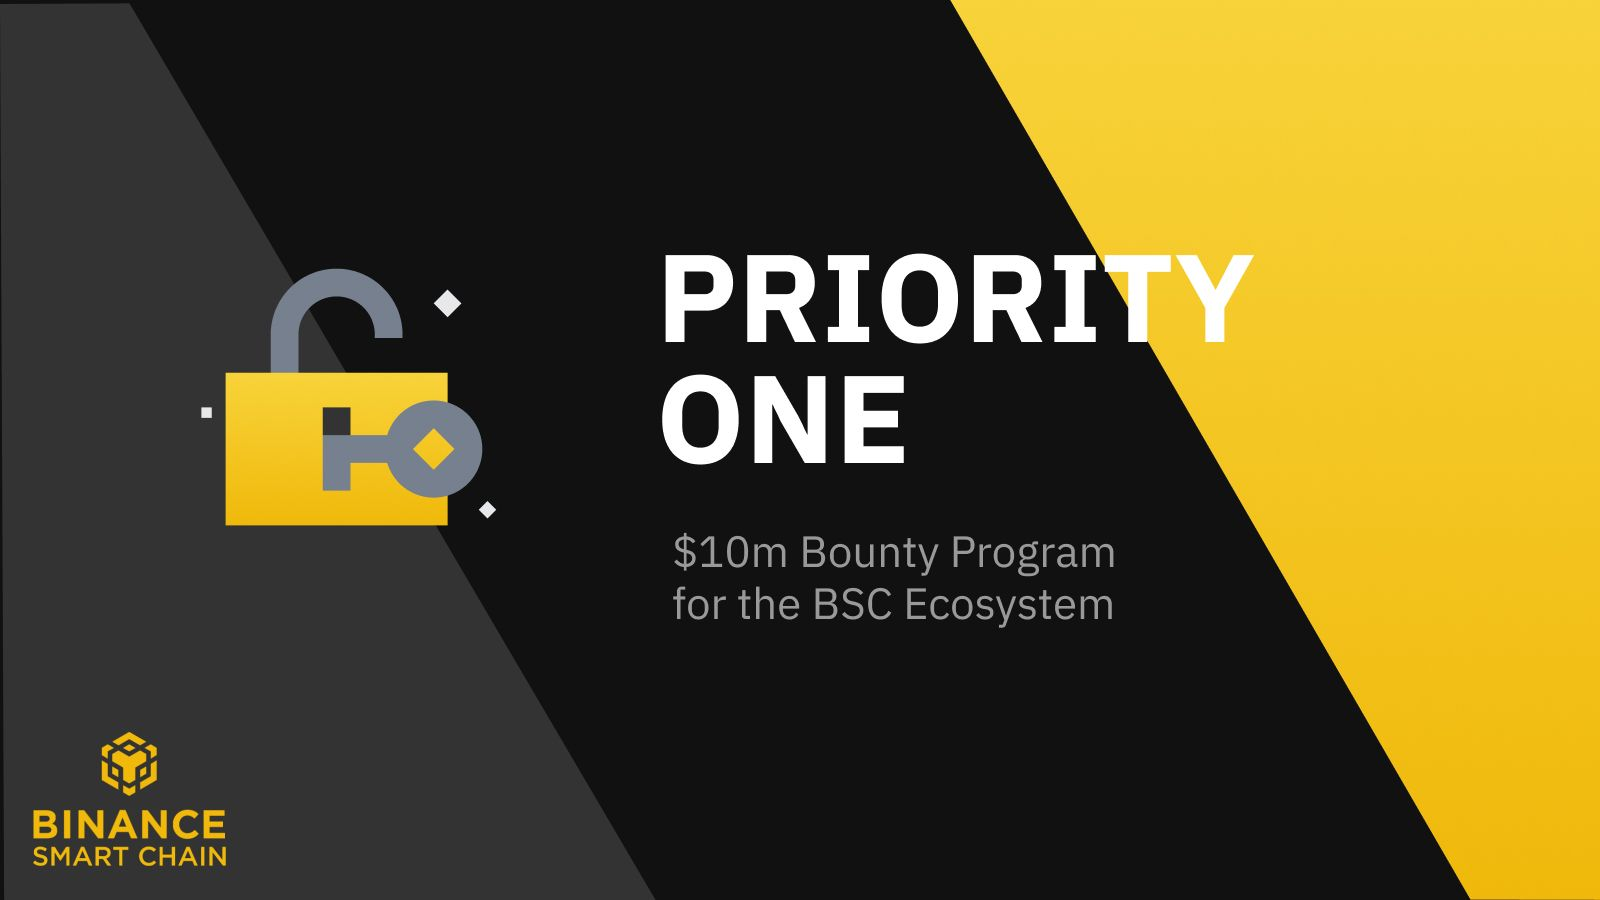 Priority ONE: $10m Joint Bounty Program for the BSC Ecosystem